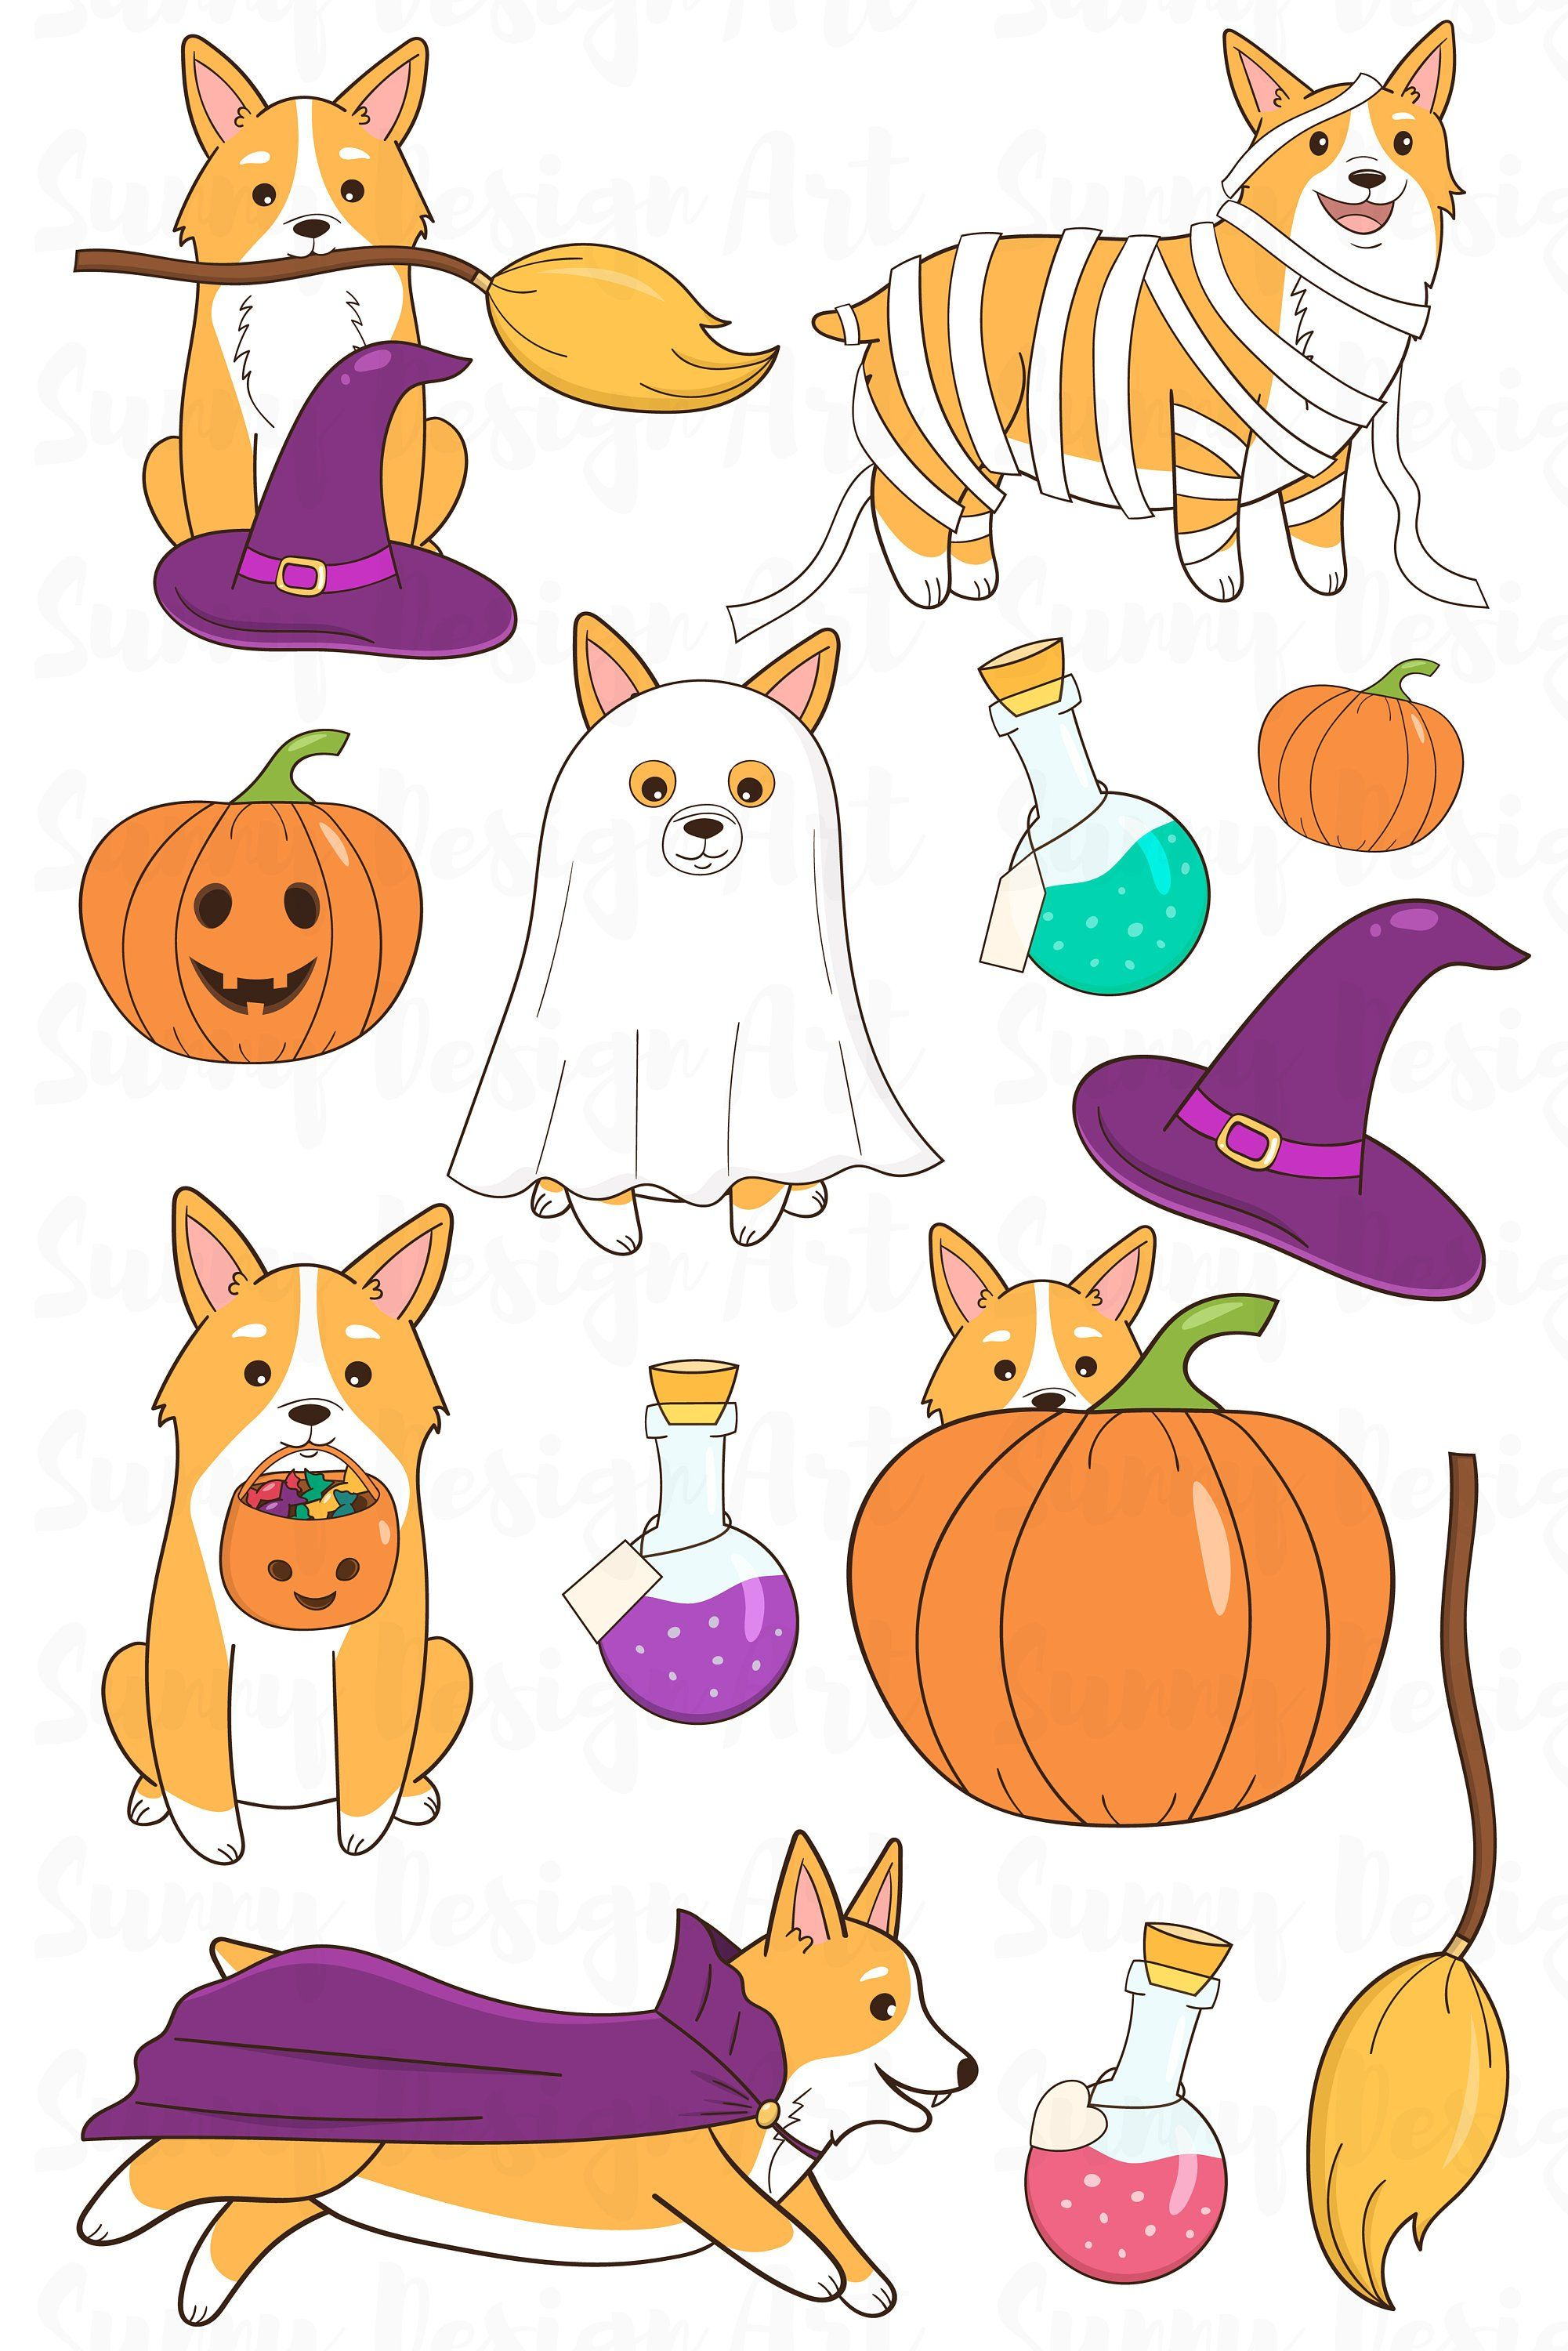 Halloween Clip Art 2020 Halloween Welsh Corgi clipart Cute Halloween clipart | Etsy in